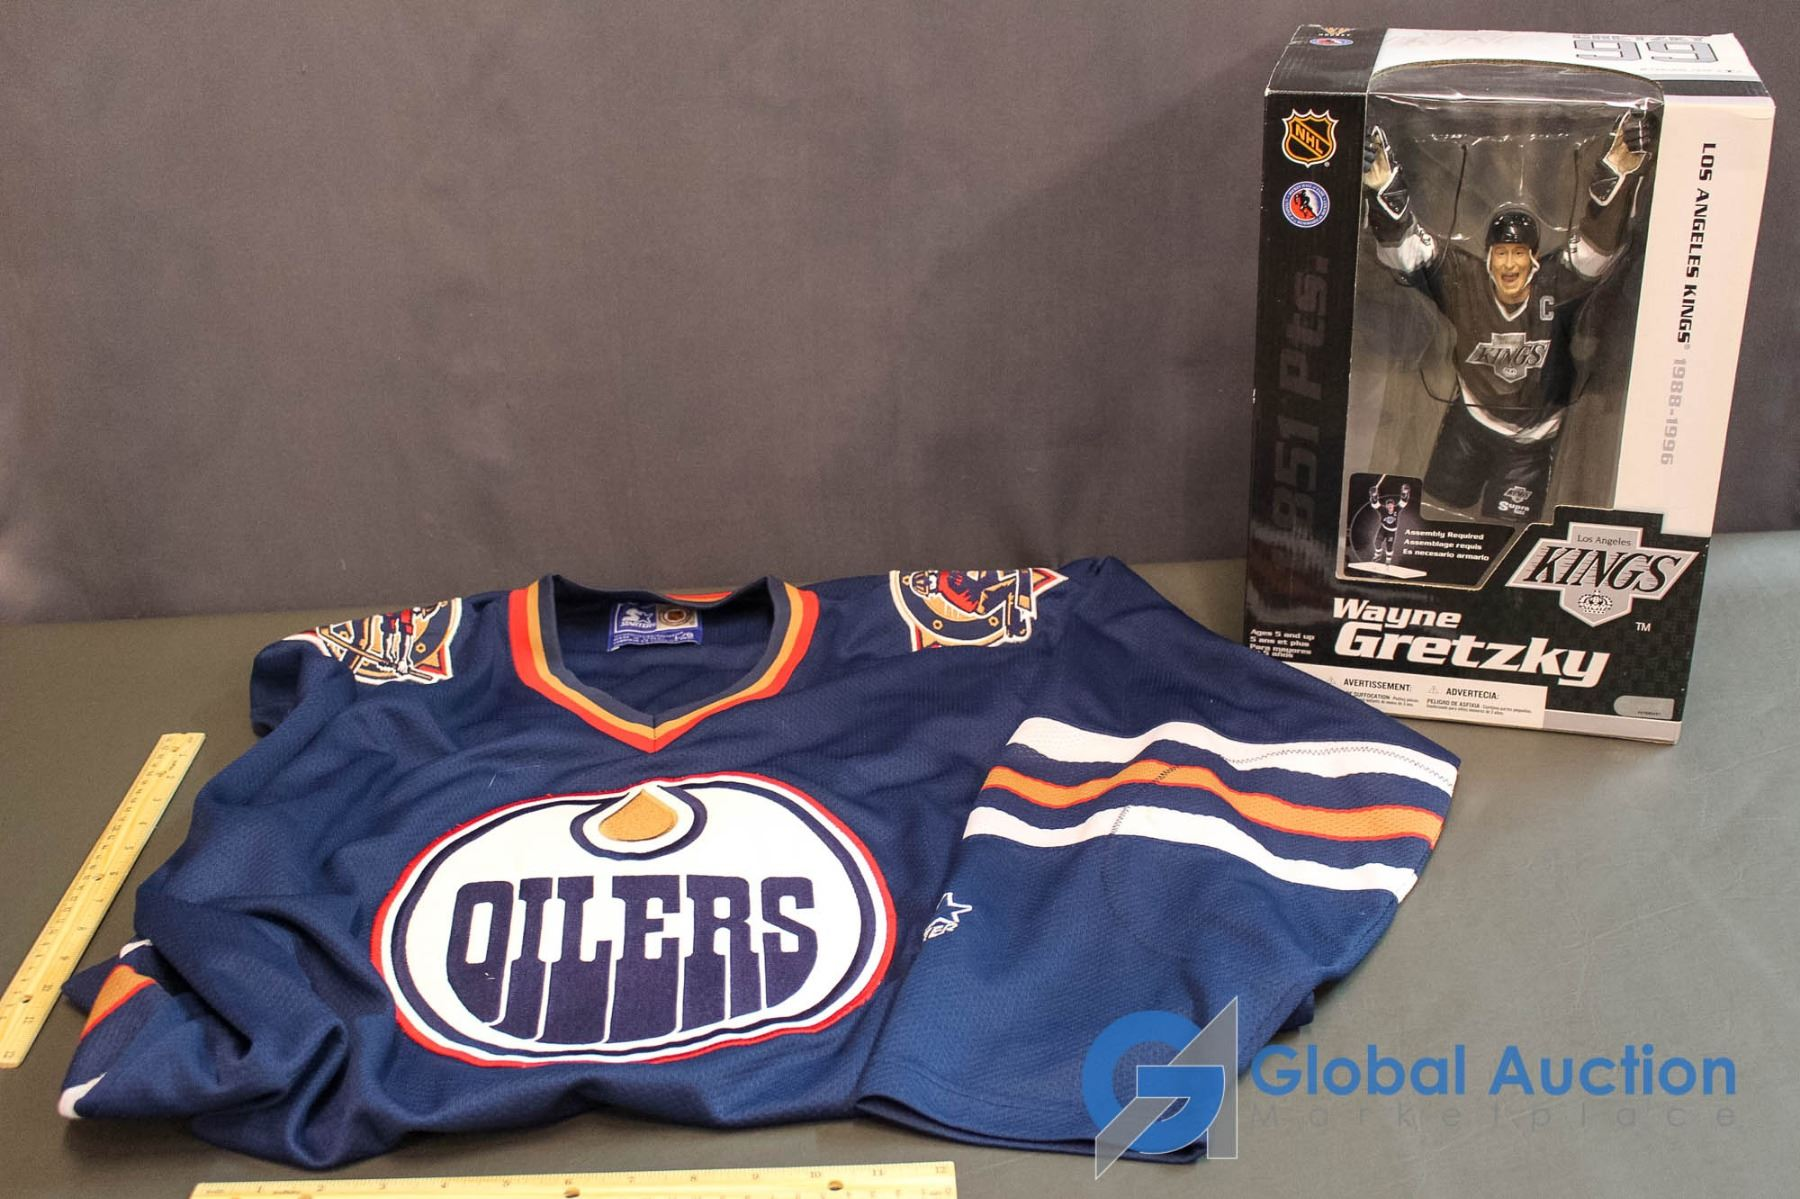 low priced c1411 a360b Wayne Gretzky L.A. Kings Limited Edition Model Action Figure & Edmonton  Oilers Jersey (Large)